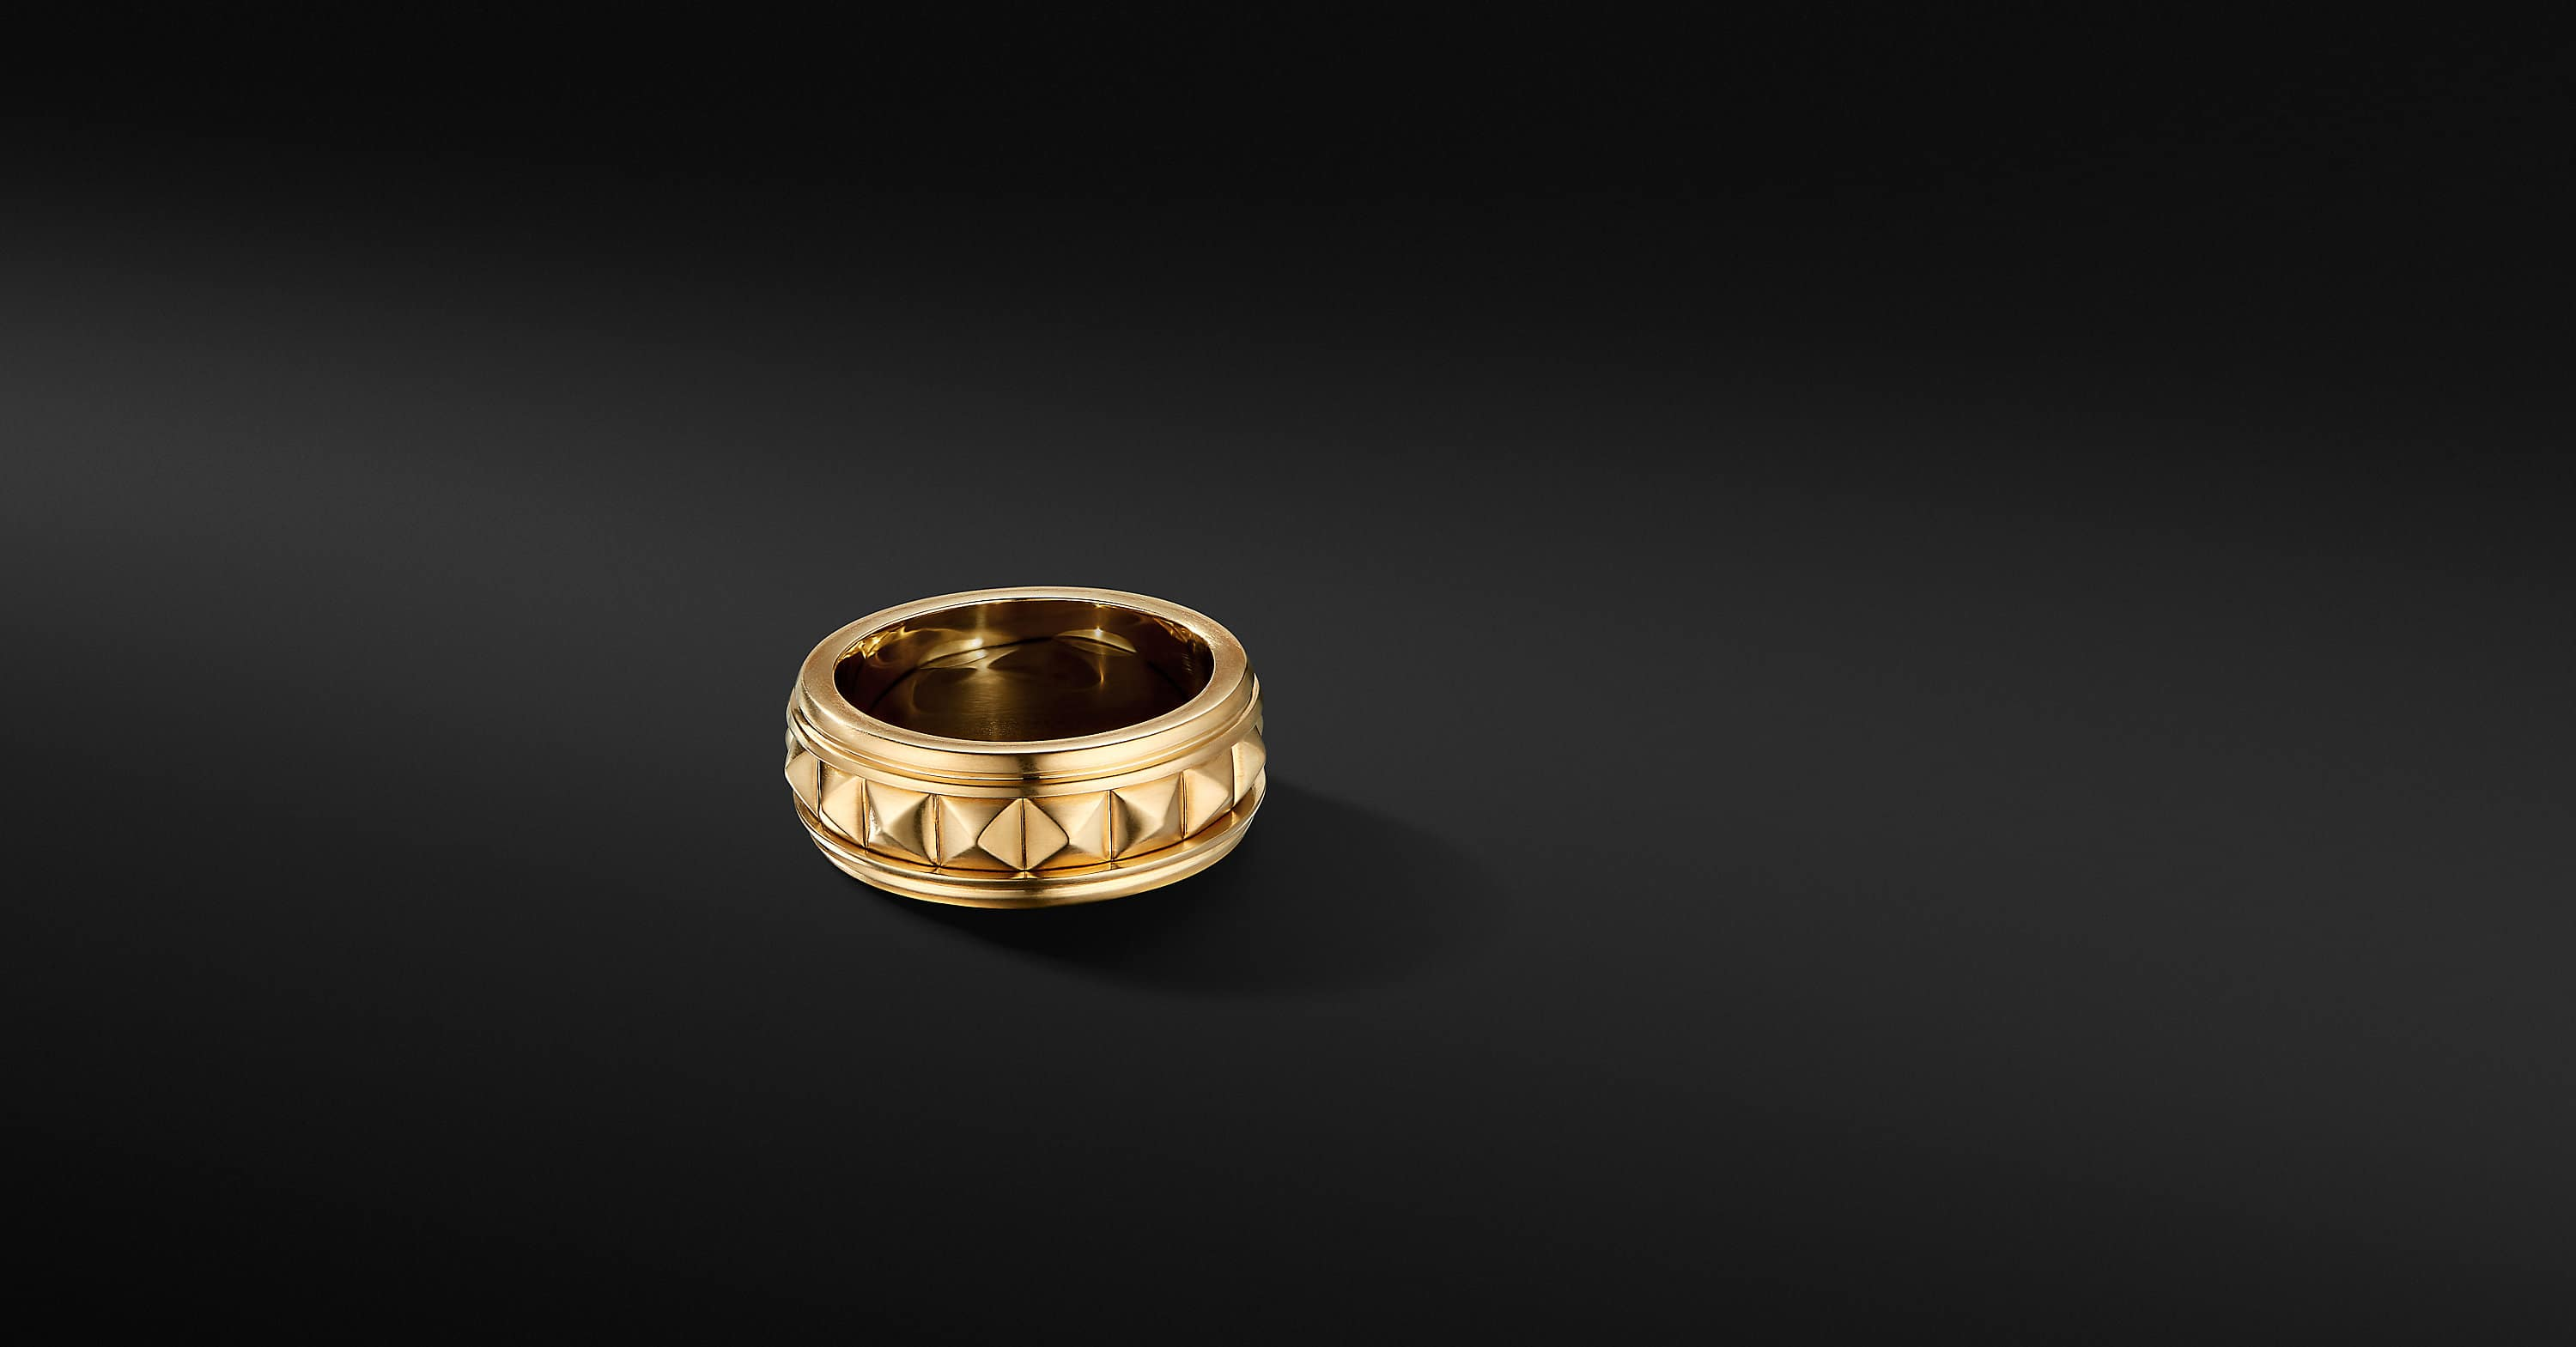 Pyramid Band Ring in 18K Yellow Gold, 8mm